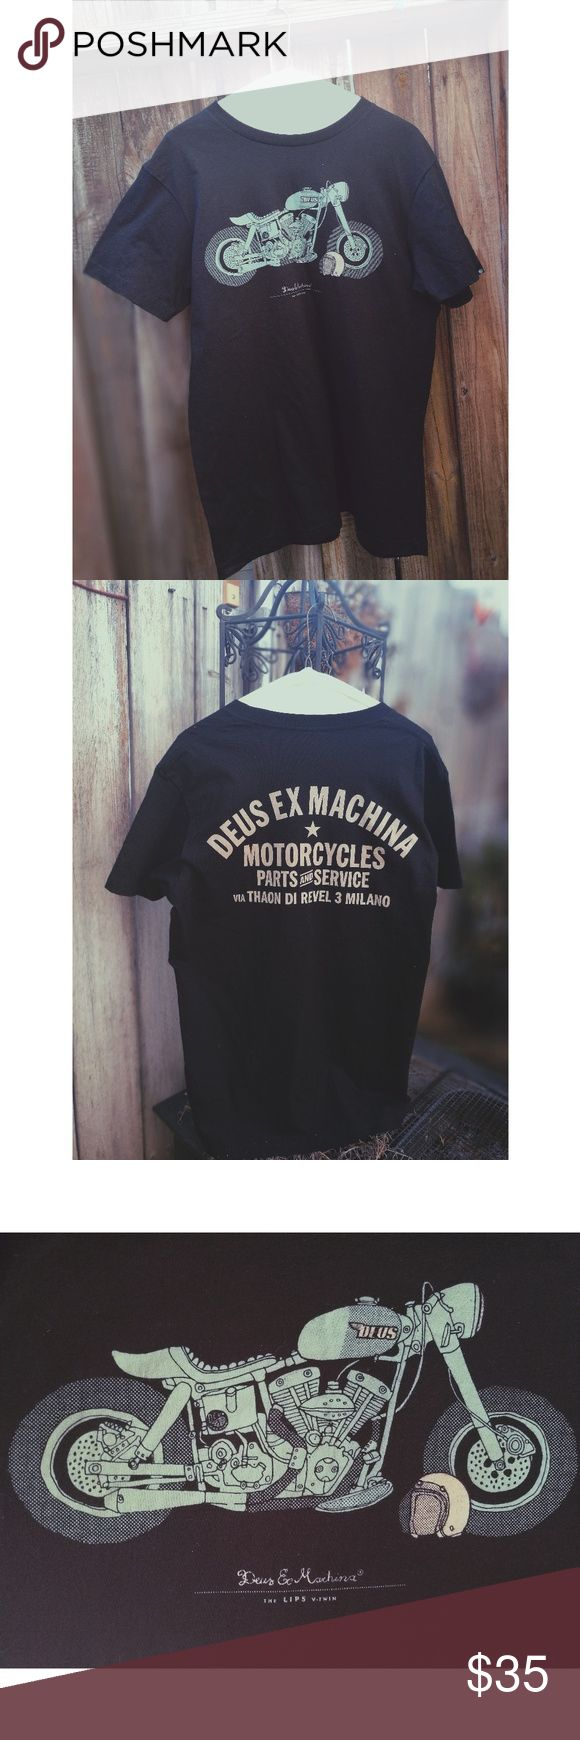 Deus Ex Machina Motorcycle Tshirt This black T-shirt features a pastel teal motorcycle & helmet on the front & writing on the back ( see pic 2) Like new, great condition! Size XL 100% Cotton Deus Ex Machina Shirts Tees - Short Sleeve